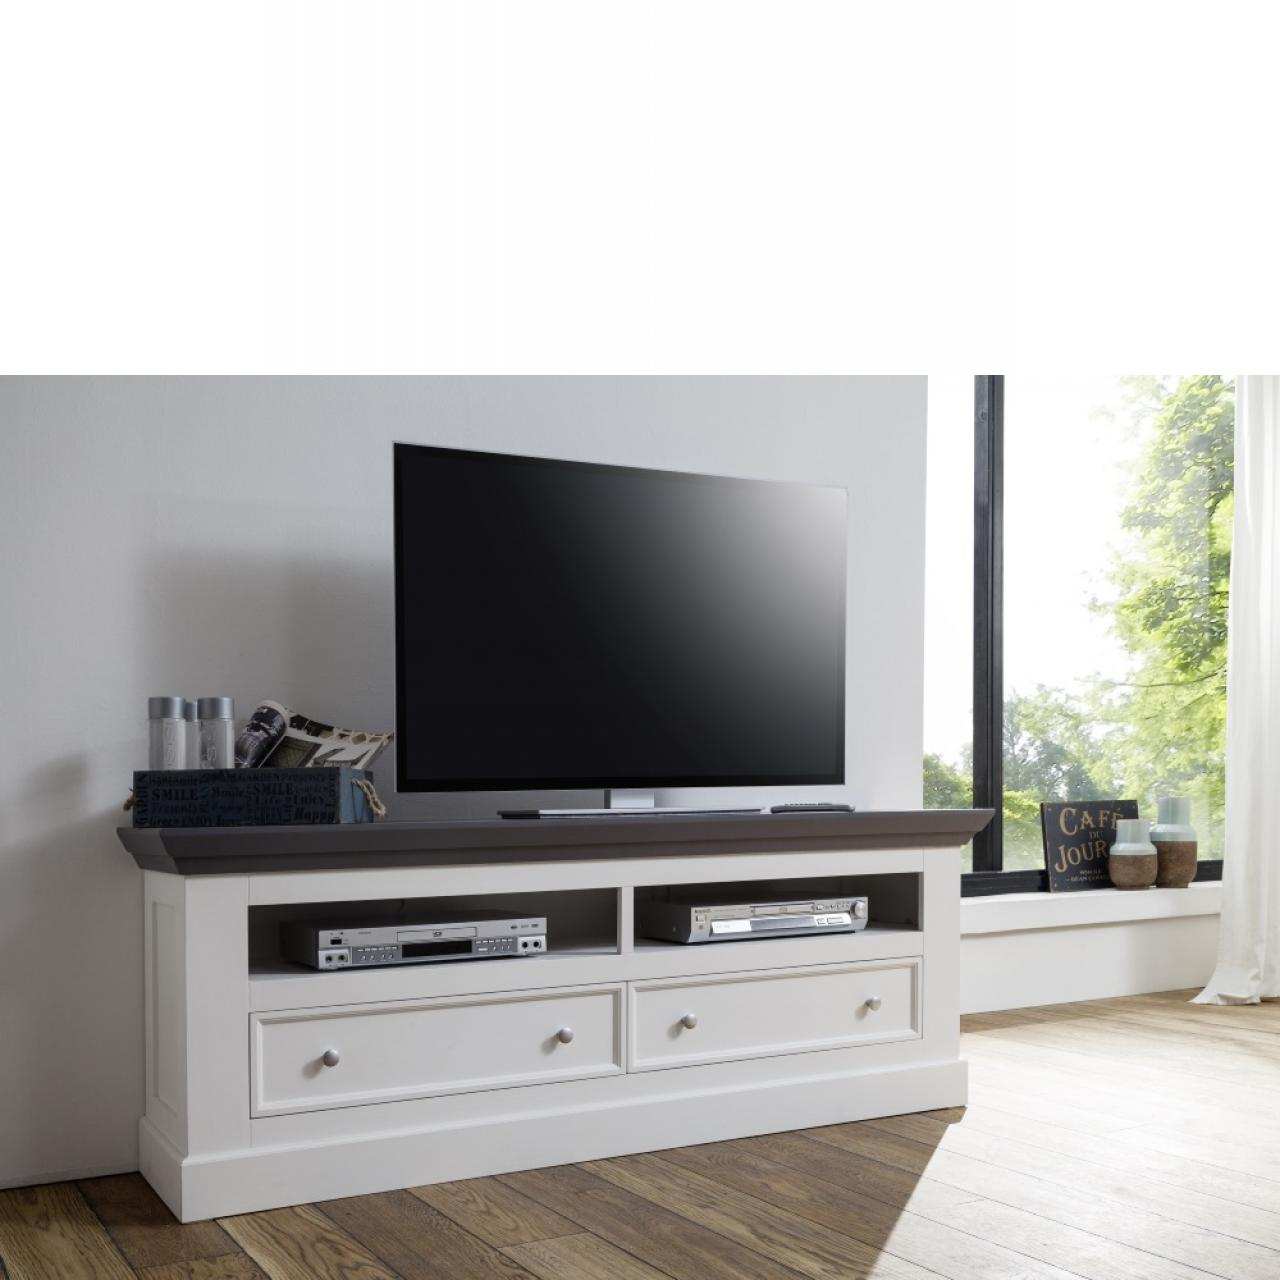 Palisander Möbel Couchtisch Sheesham Massivholz Nature Grey #33 Tv Board Holz Latest Whitney Mountain Tv Board Tren